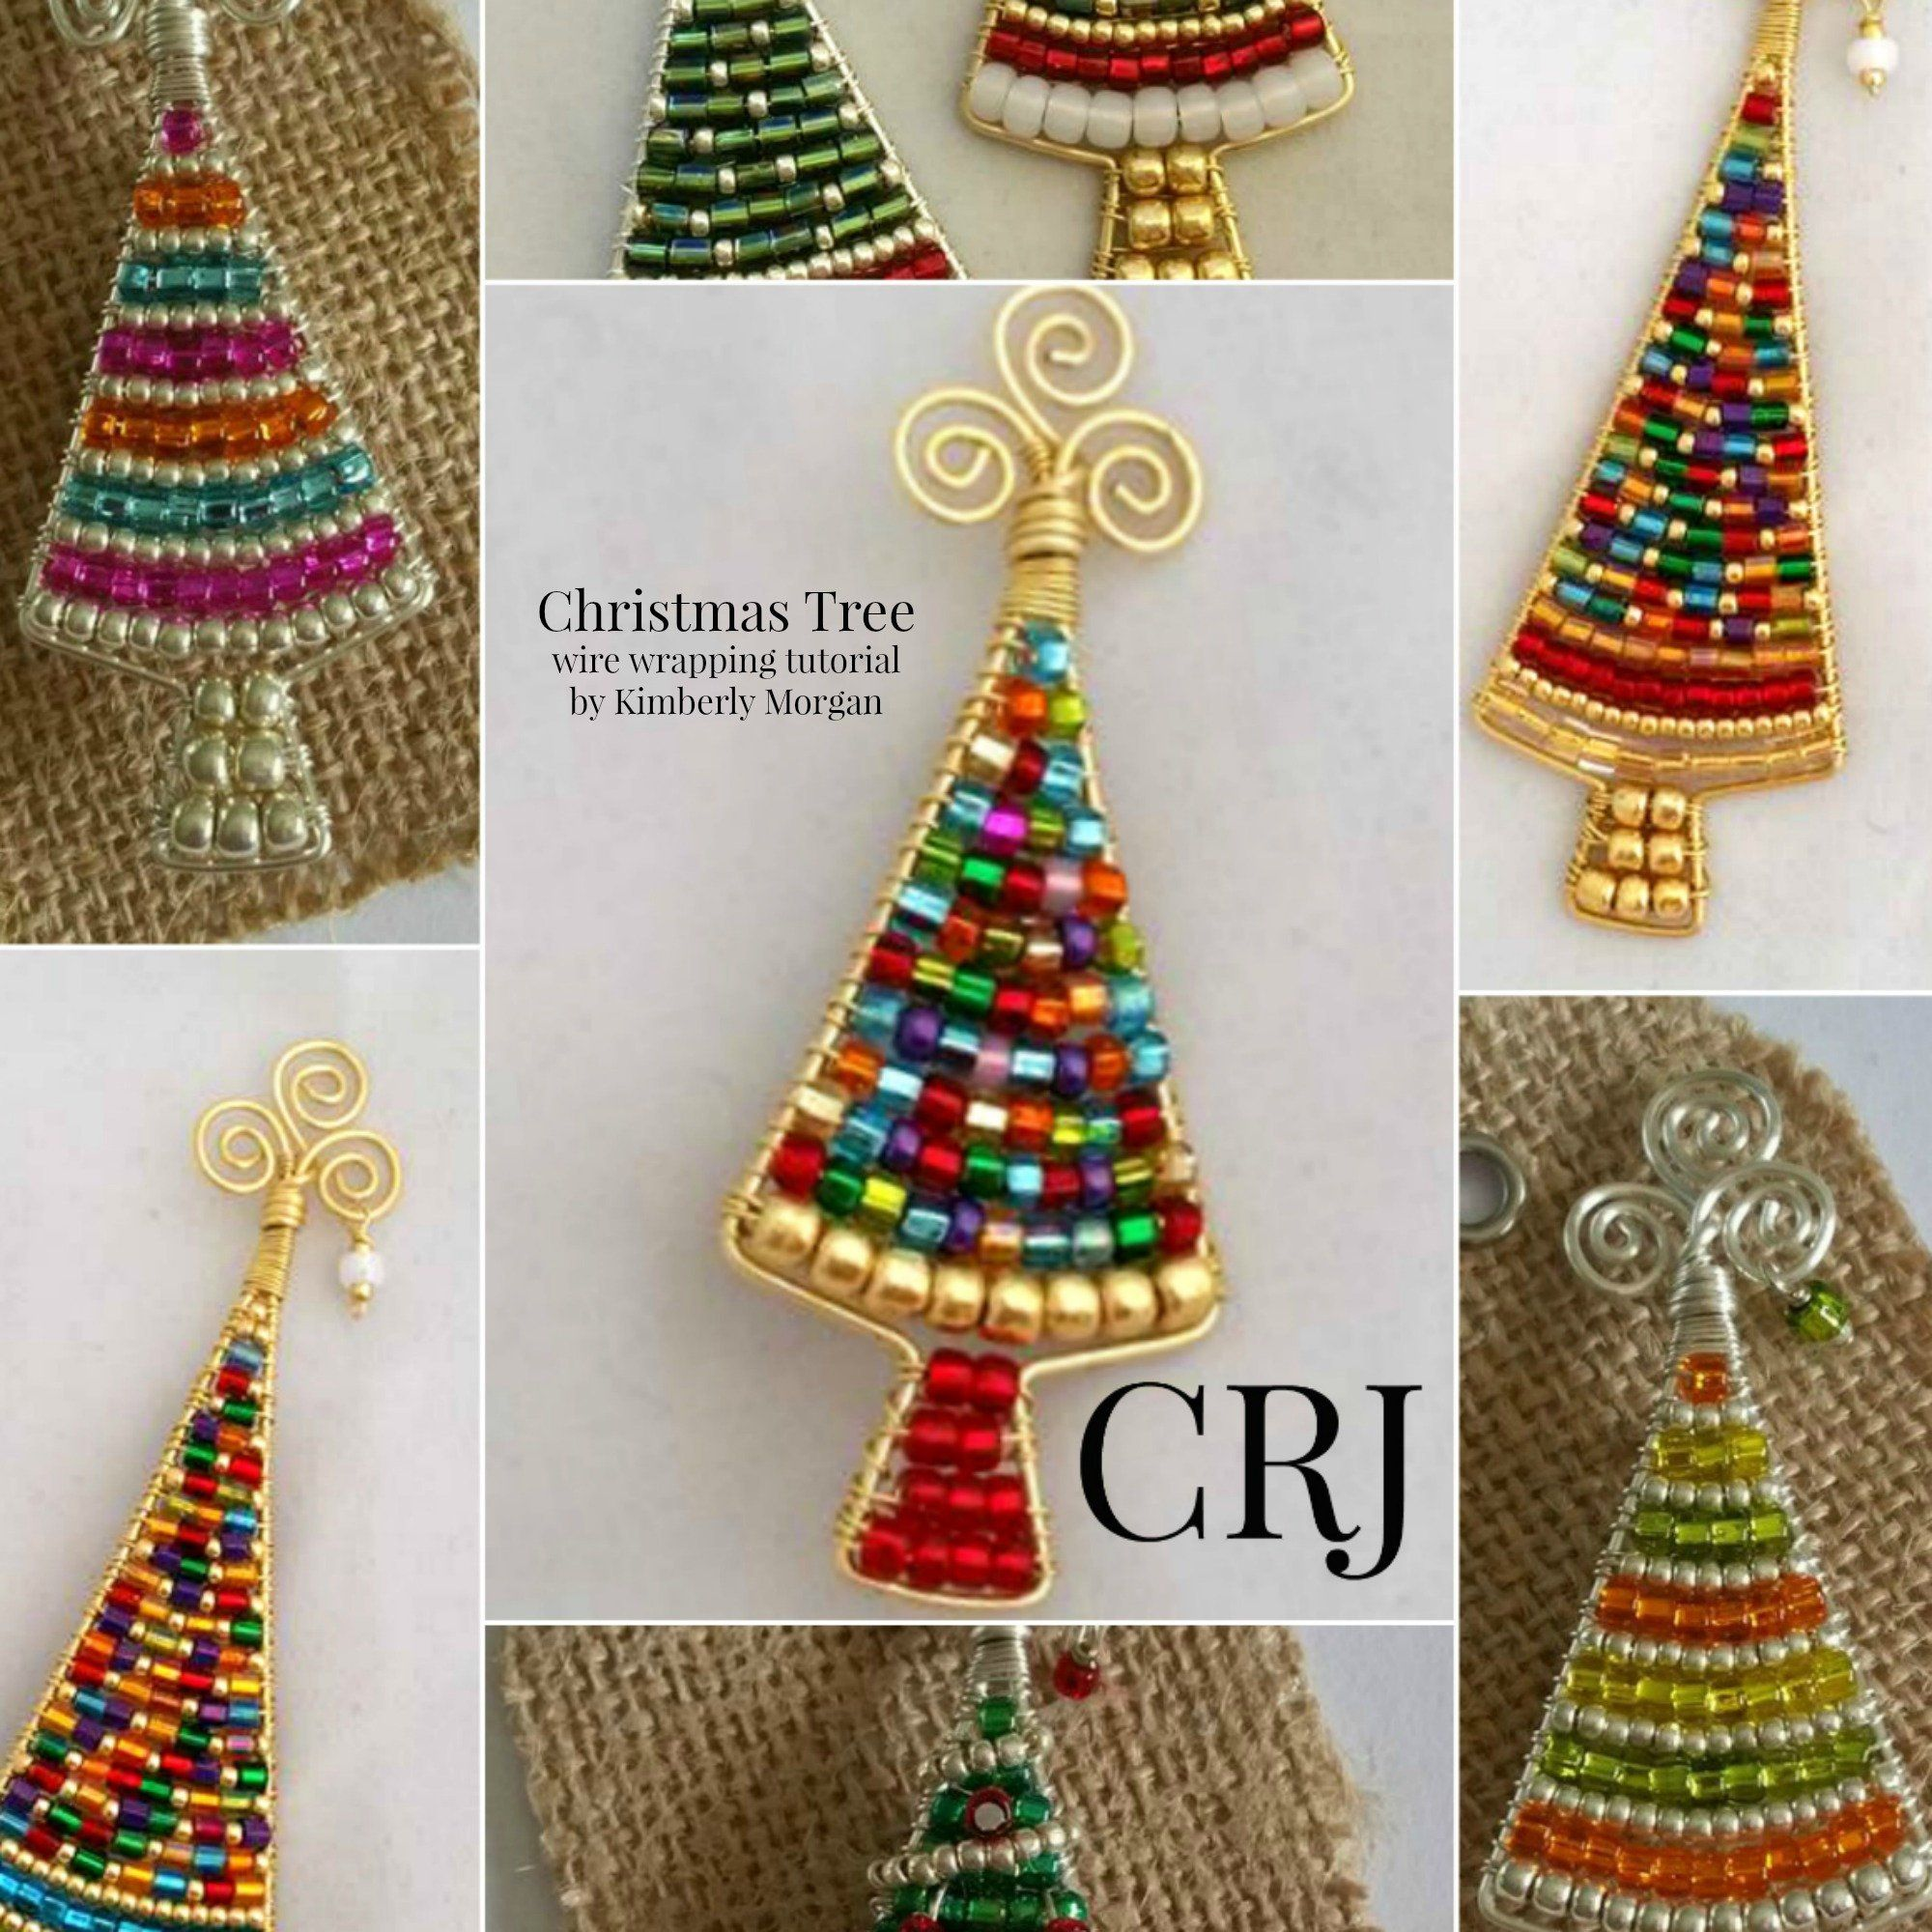 The Christmas Tree Pin Tutorial Step By Step Instructions And Photographs Diy Downloading Pdf Instructions Wire Wrapping Seed Beads Simple Holiday Gifts Christmas Tree Kit Little Christmas Trees